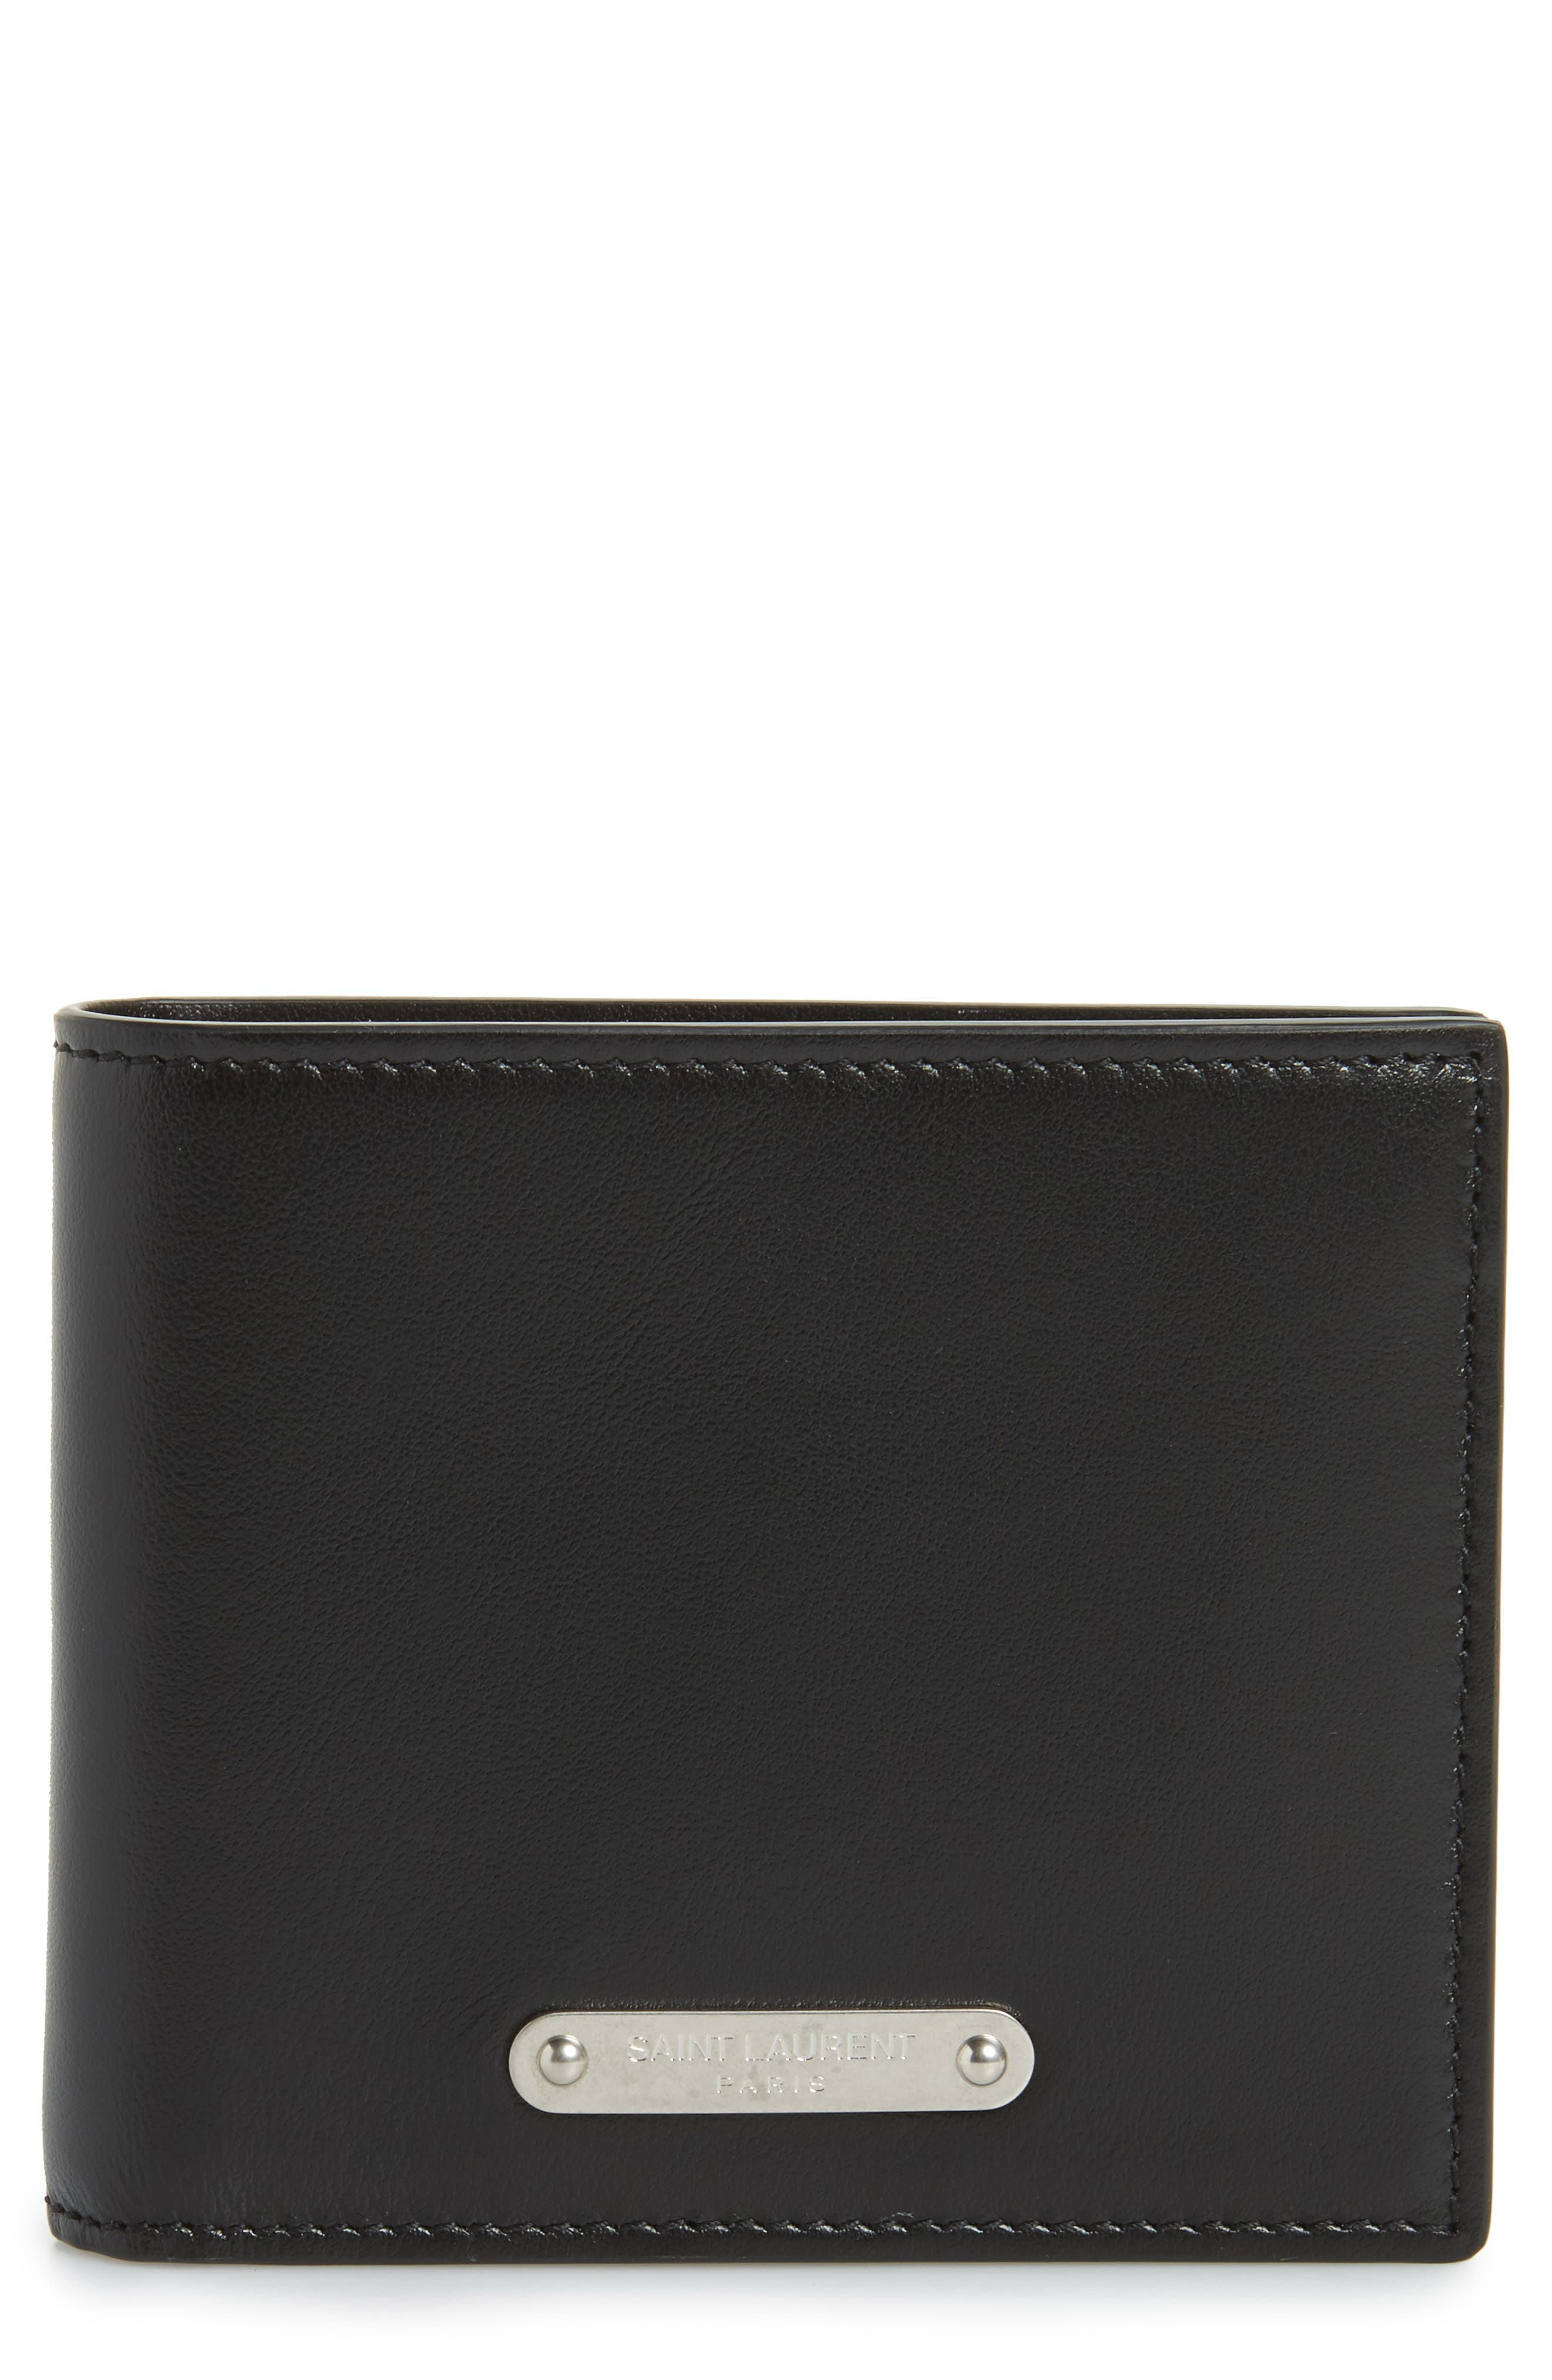 East/West Leather Wallet,                             Main thumbnail 1, color,